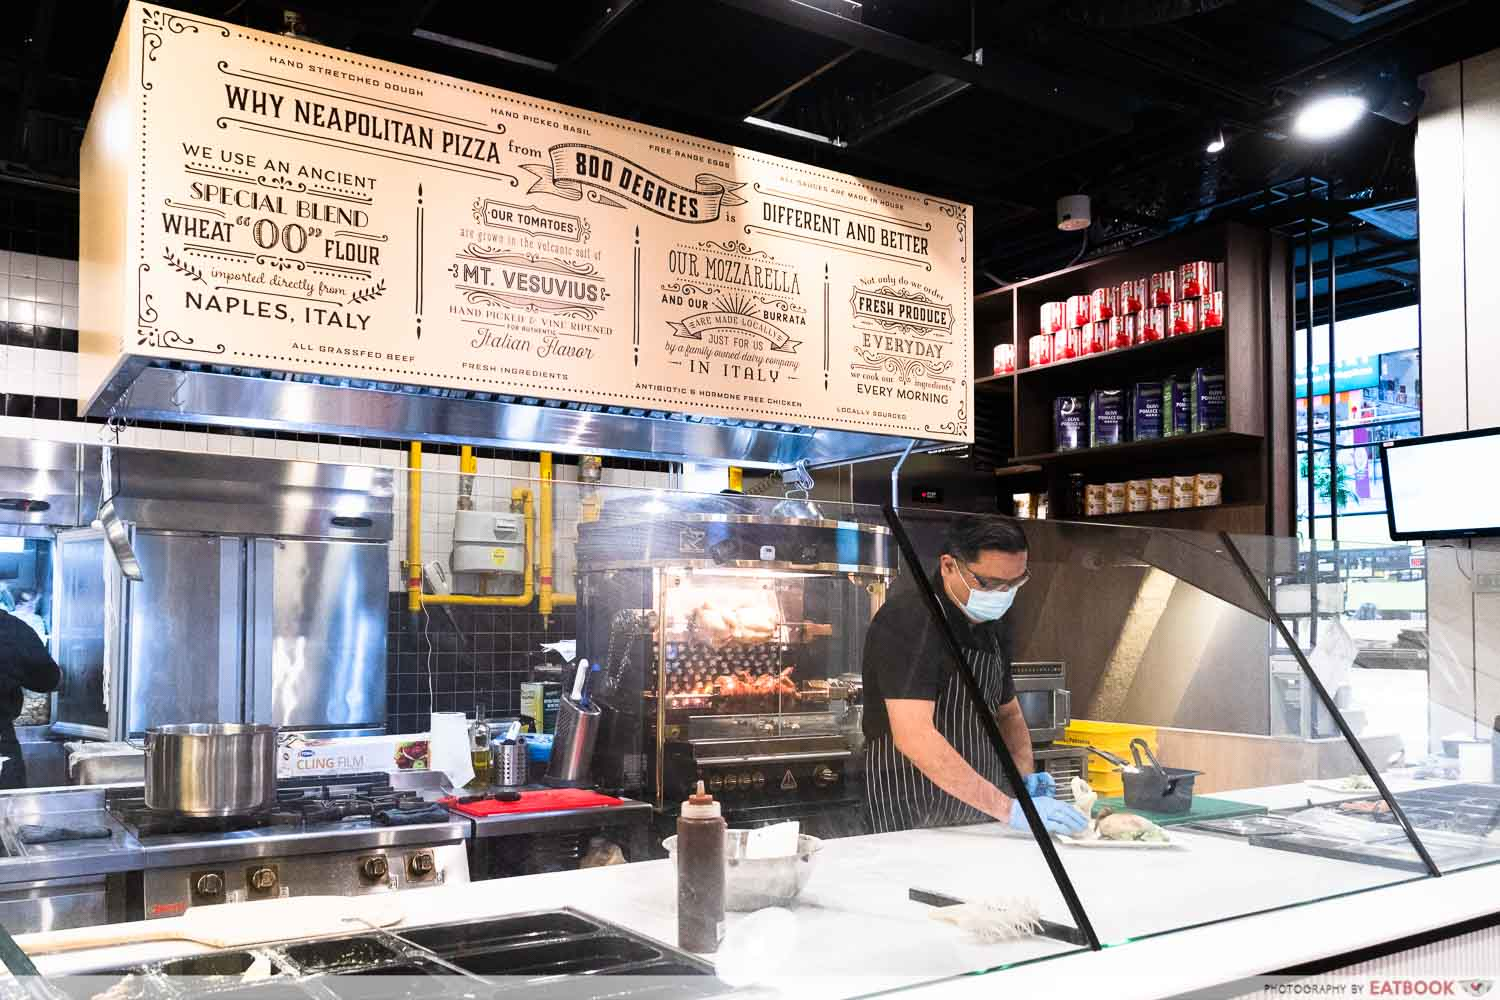 New cafes and restaurants in May 2021 - 800° Woodfired Kitchen